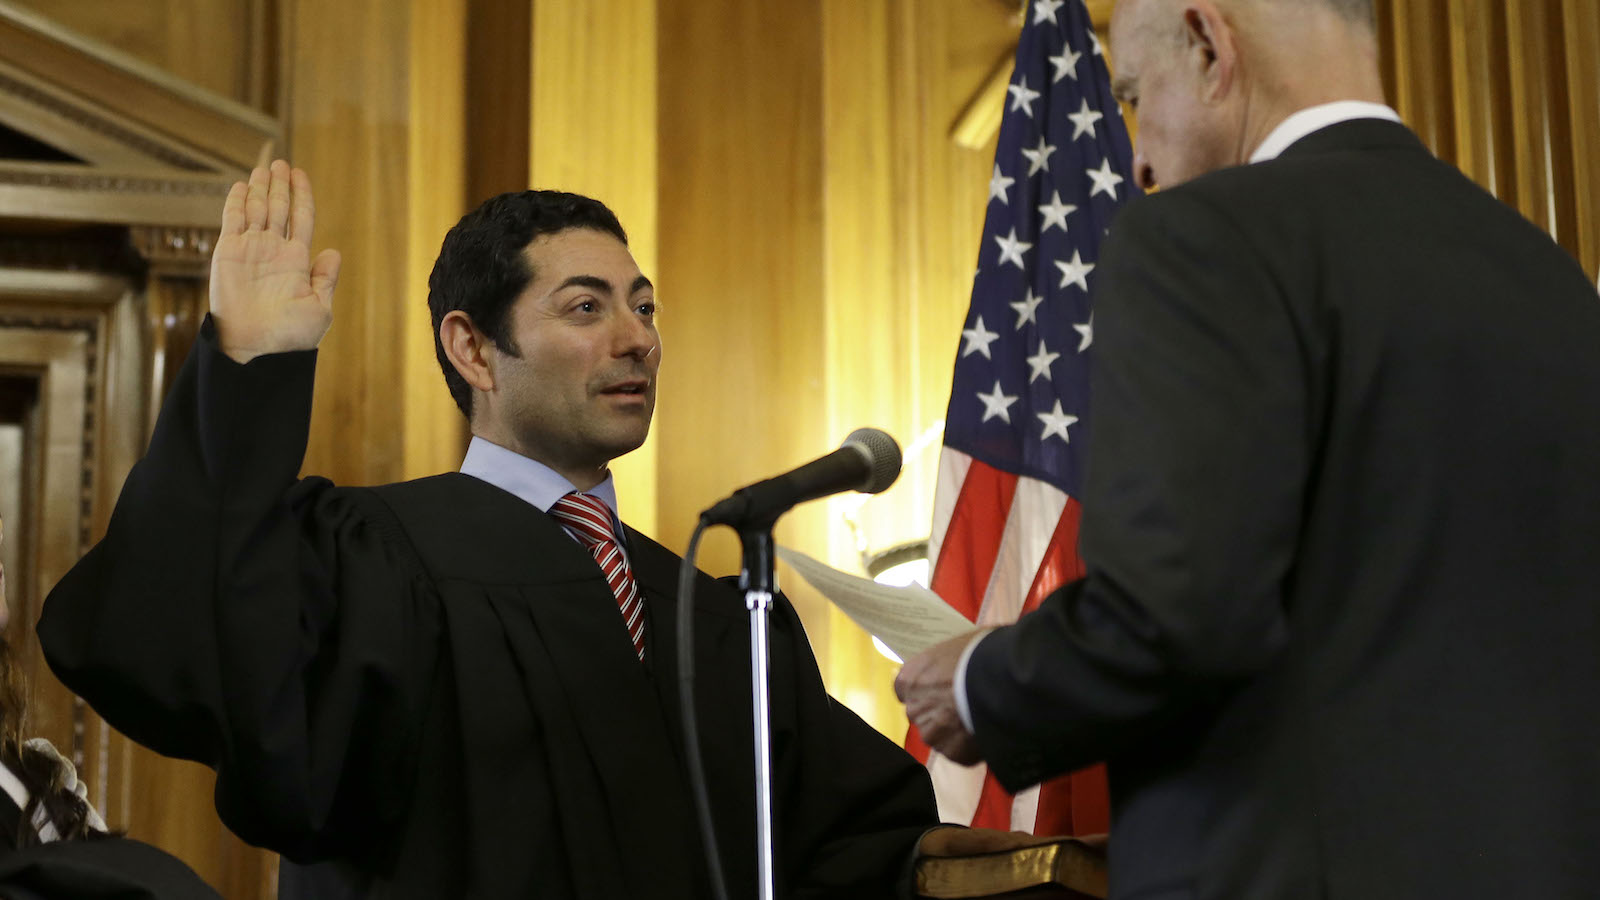 Mariano-Florentino Cuellar, left, is sworn in as an associate justice to the California Supreme Court by Gov. Jerry Brown during an inauguration ceremony in Sacramento, Calif., Monday, Jan. 5,  2015. (AP Photo/Rich Pedroncelli)